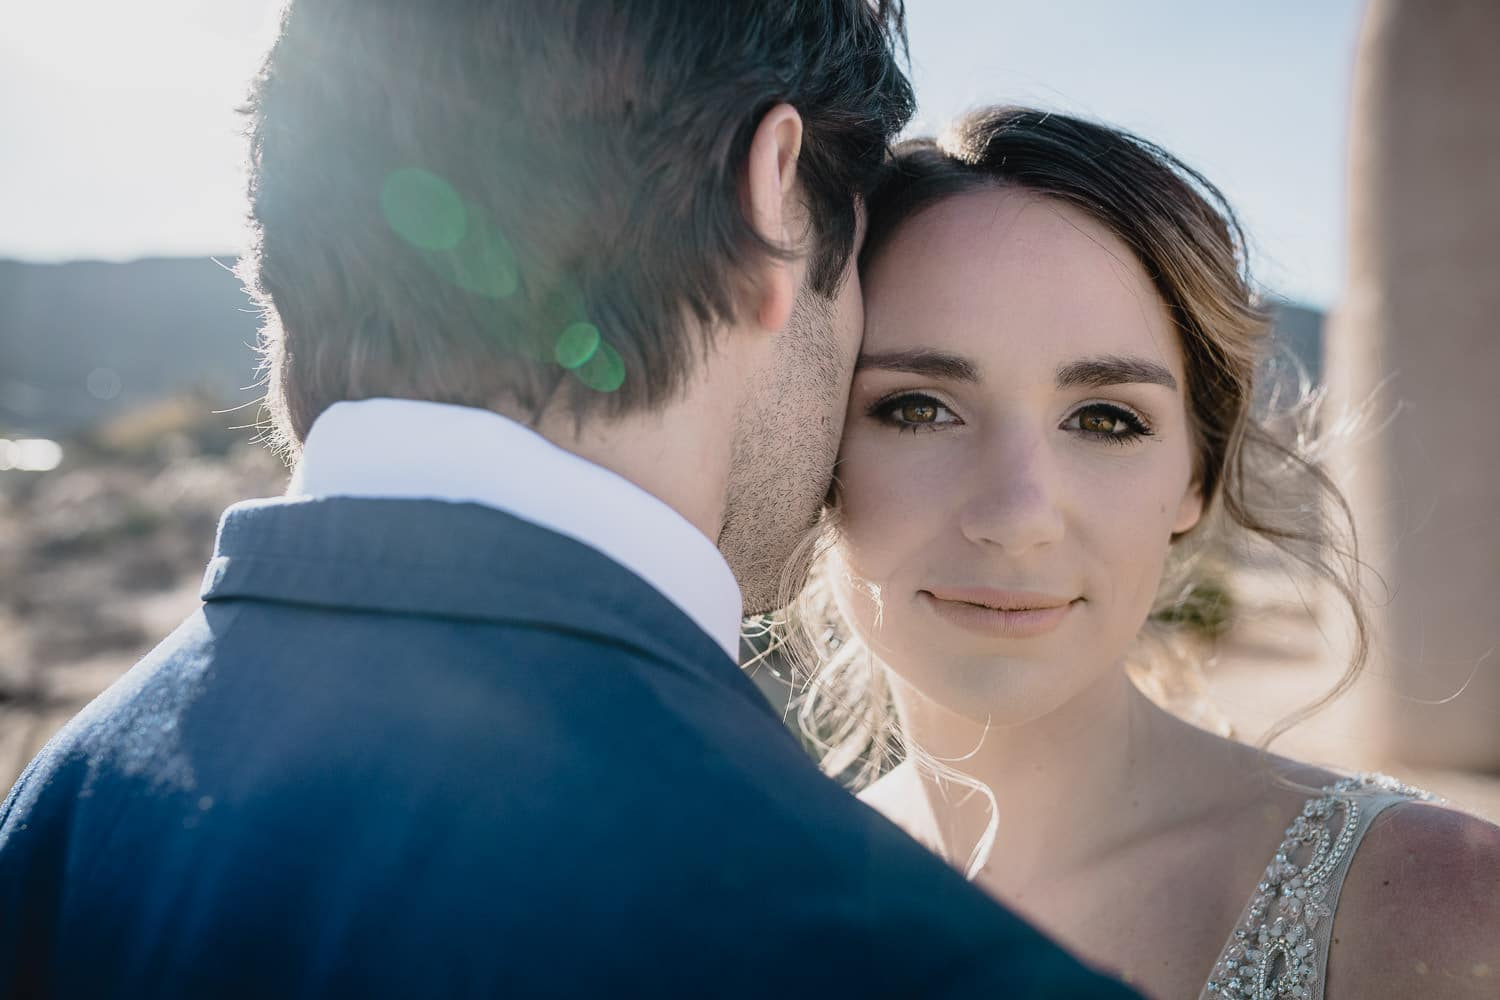 Melanie + Anthony Joshua Tree Intimate Elopement 12